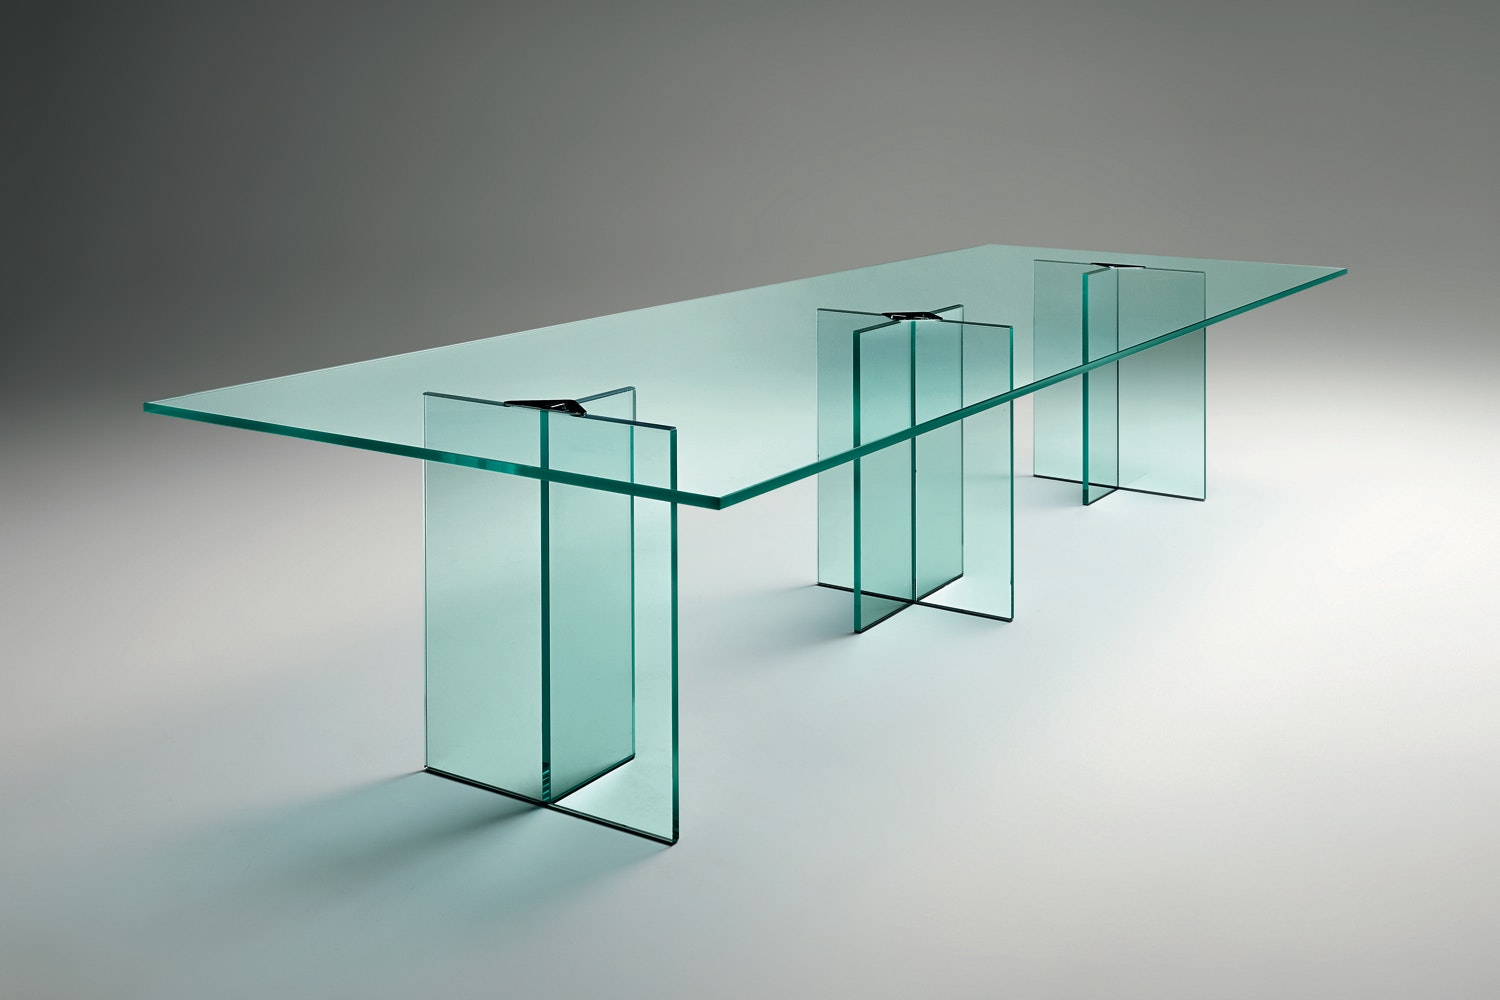 Llt Ofx Meeting Table by Dante O.Benini & Luca Gonzo for Fiam Italia